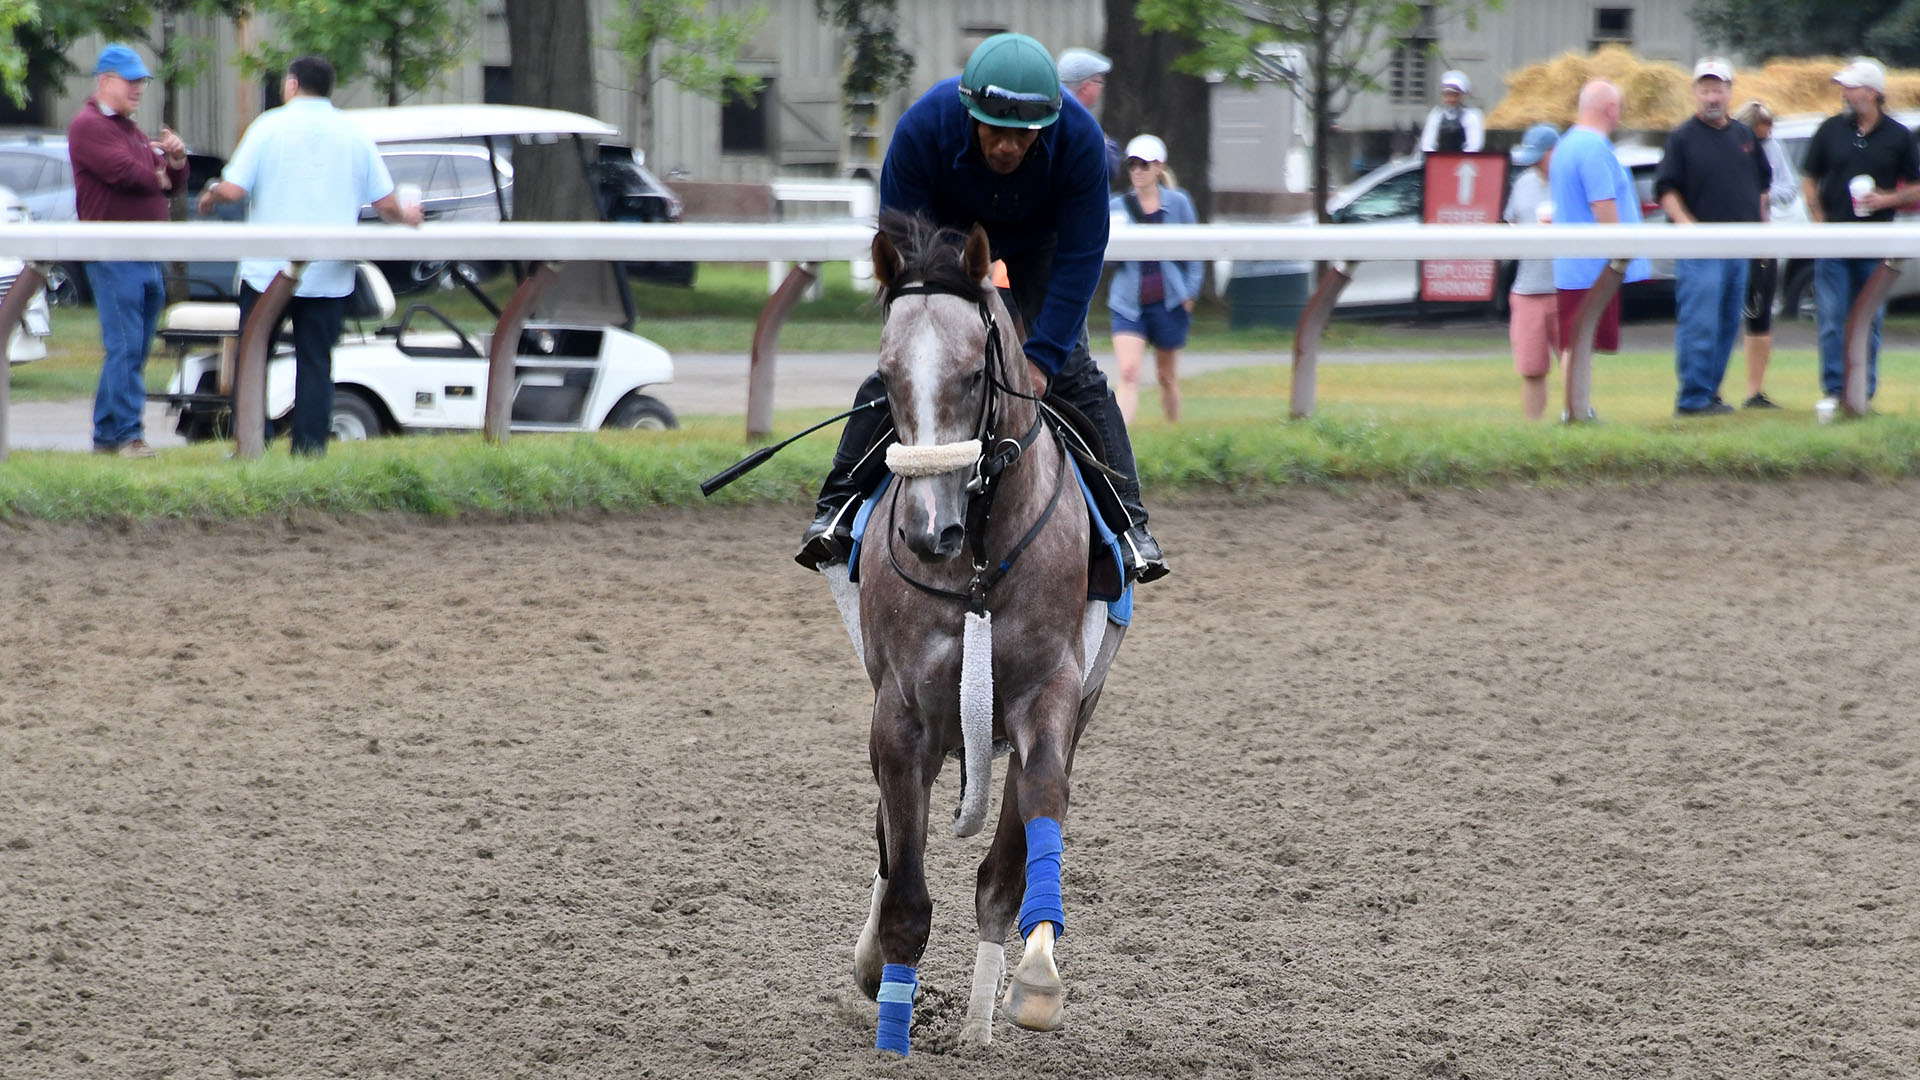 Ethos (Ghostzapper - Happy Now), owned as part of a thoroughbred racing partnership with Centennial Farms. Shown at Saratoga Race Course.